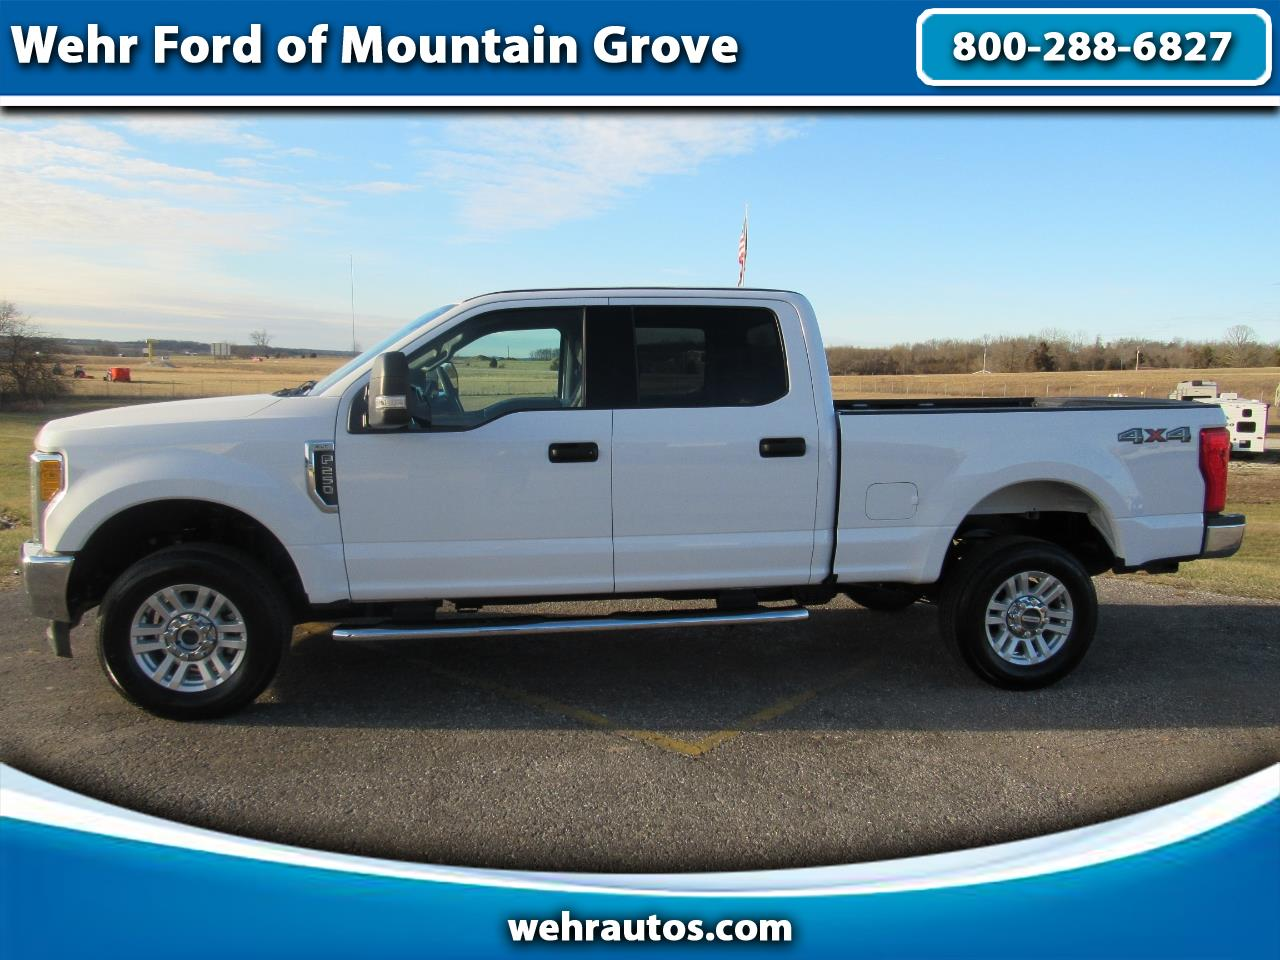 2017 Ford Super Duty F-250 XLT Crew Cab 4x4